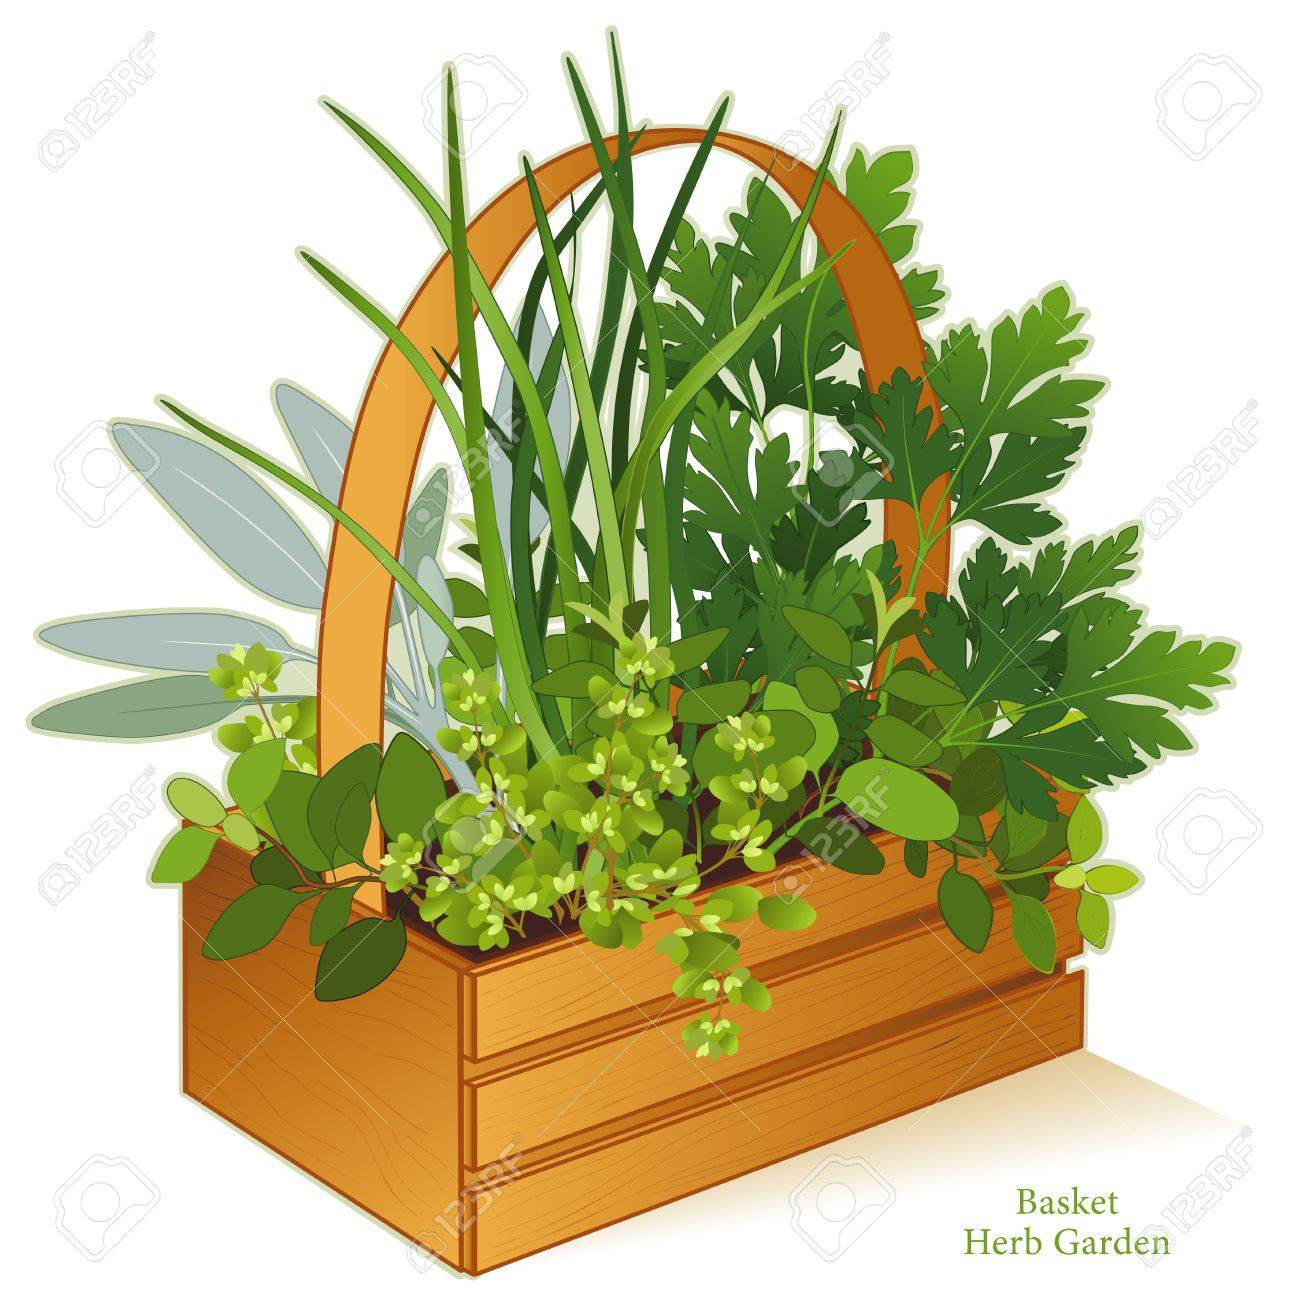 Planter For Herbs Herb Garden In Wood Basket Planter With Gourmet Cooking Herbs